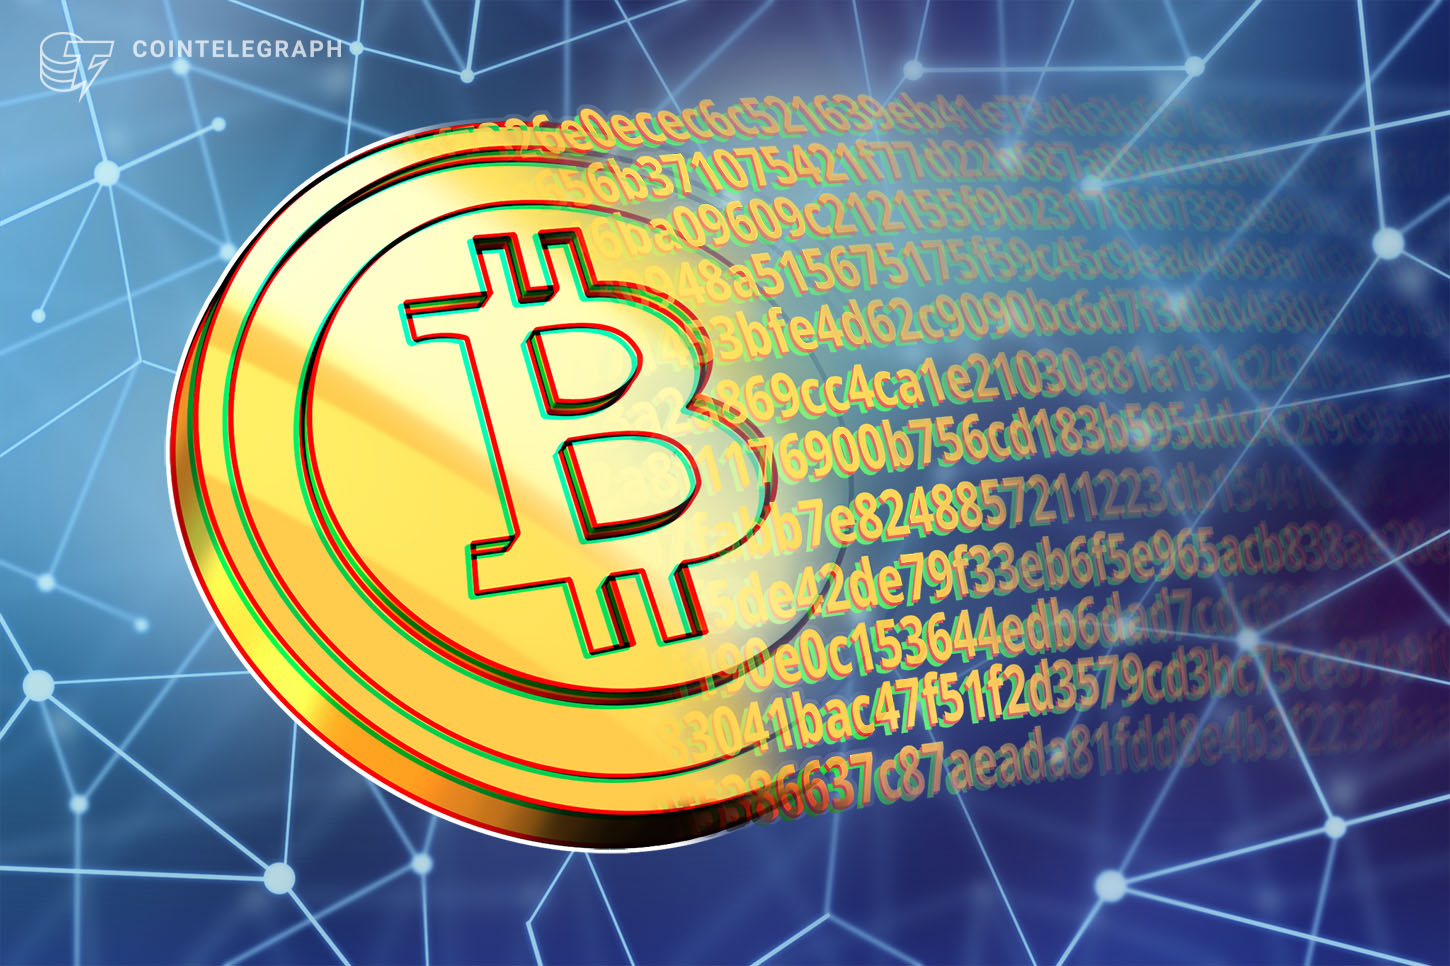 Bitcoin adoption could reach 90% by 2030, investment firm founder claims